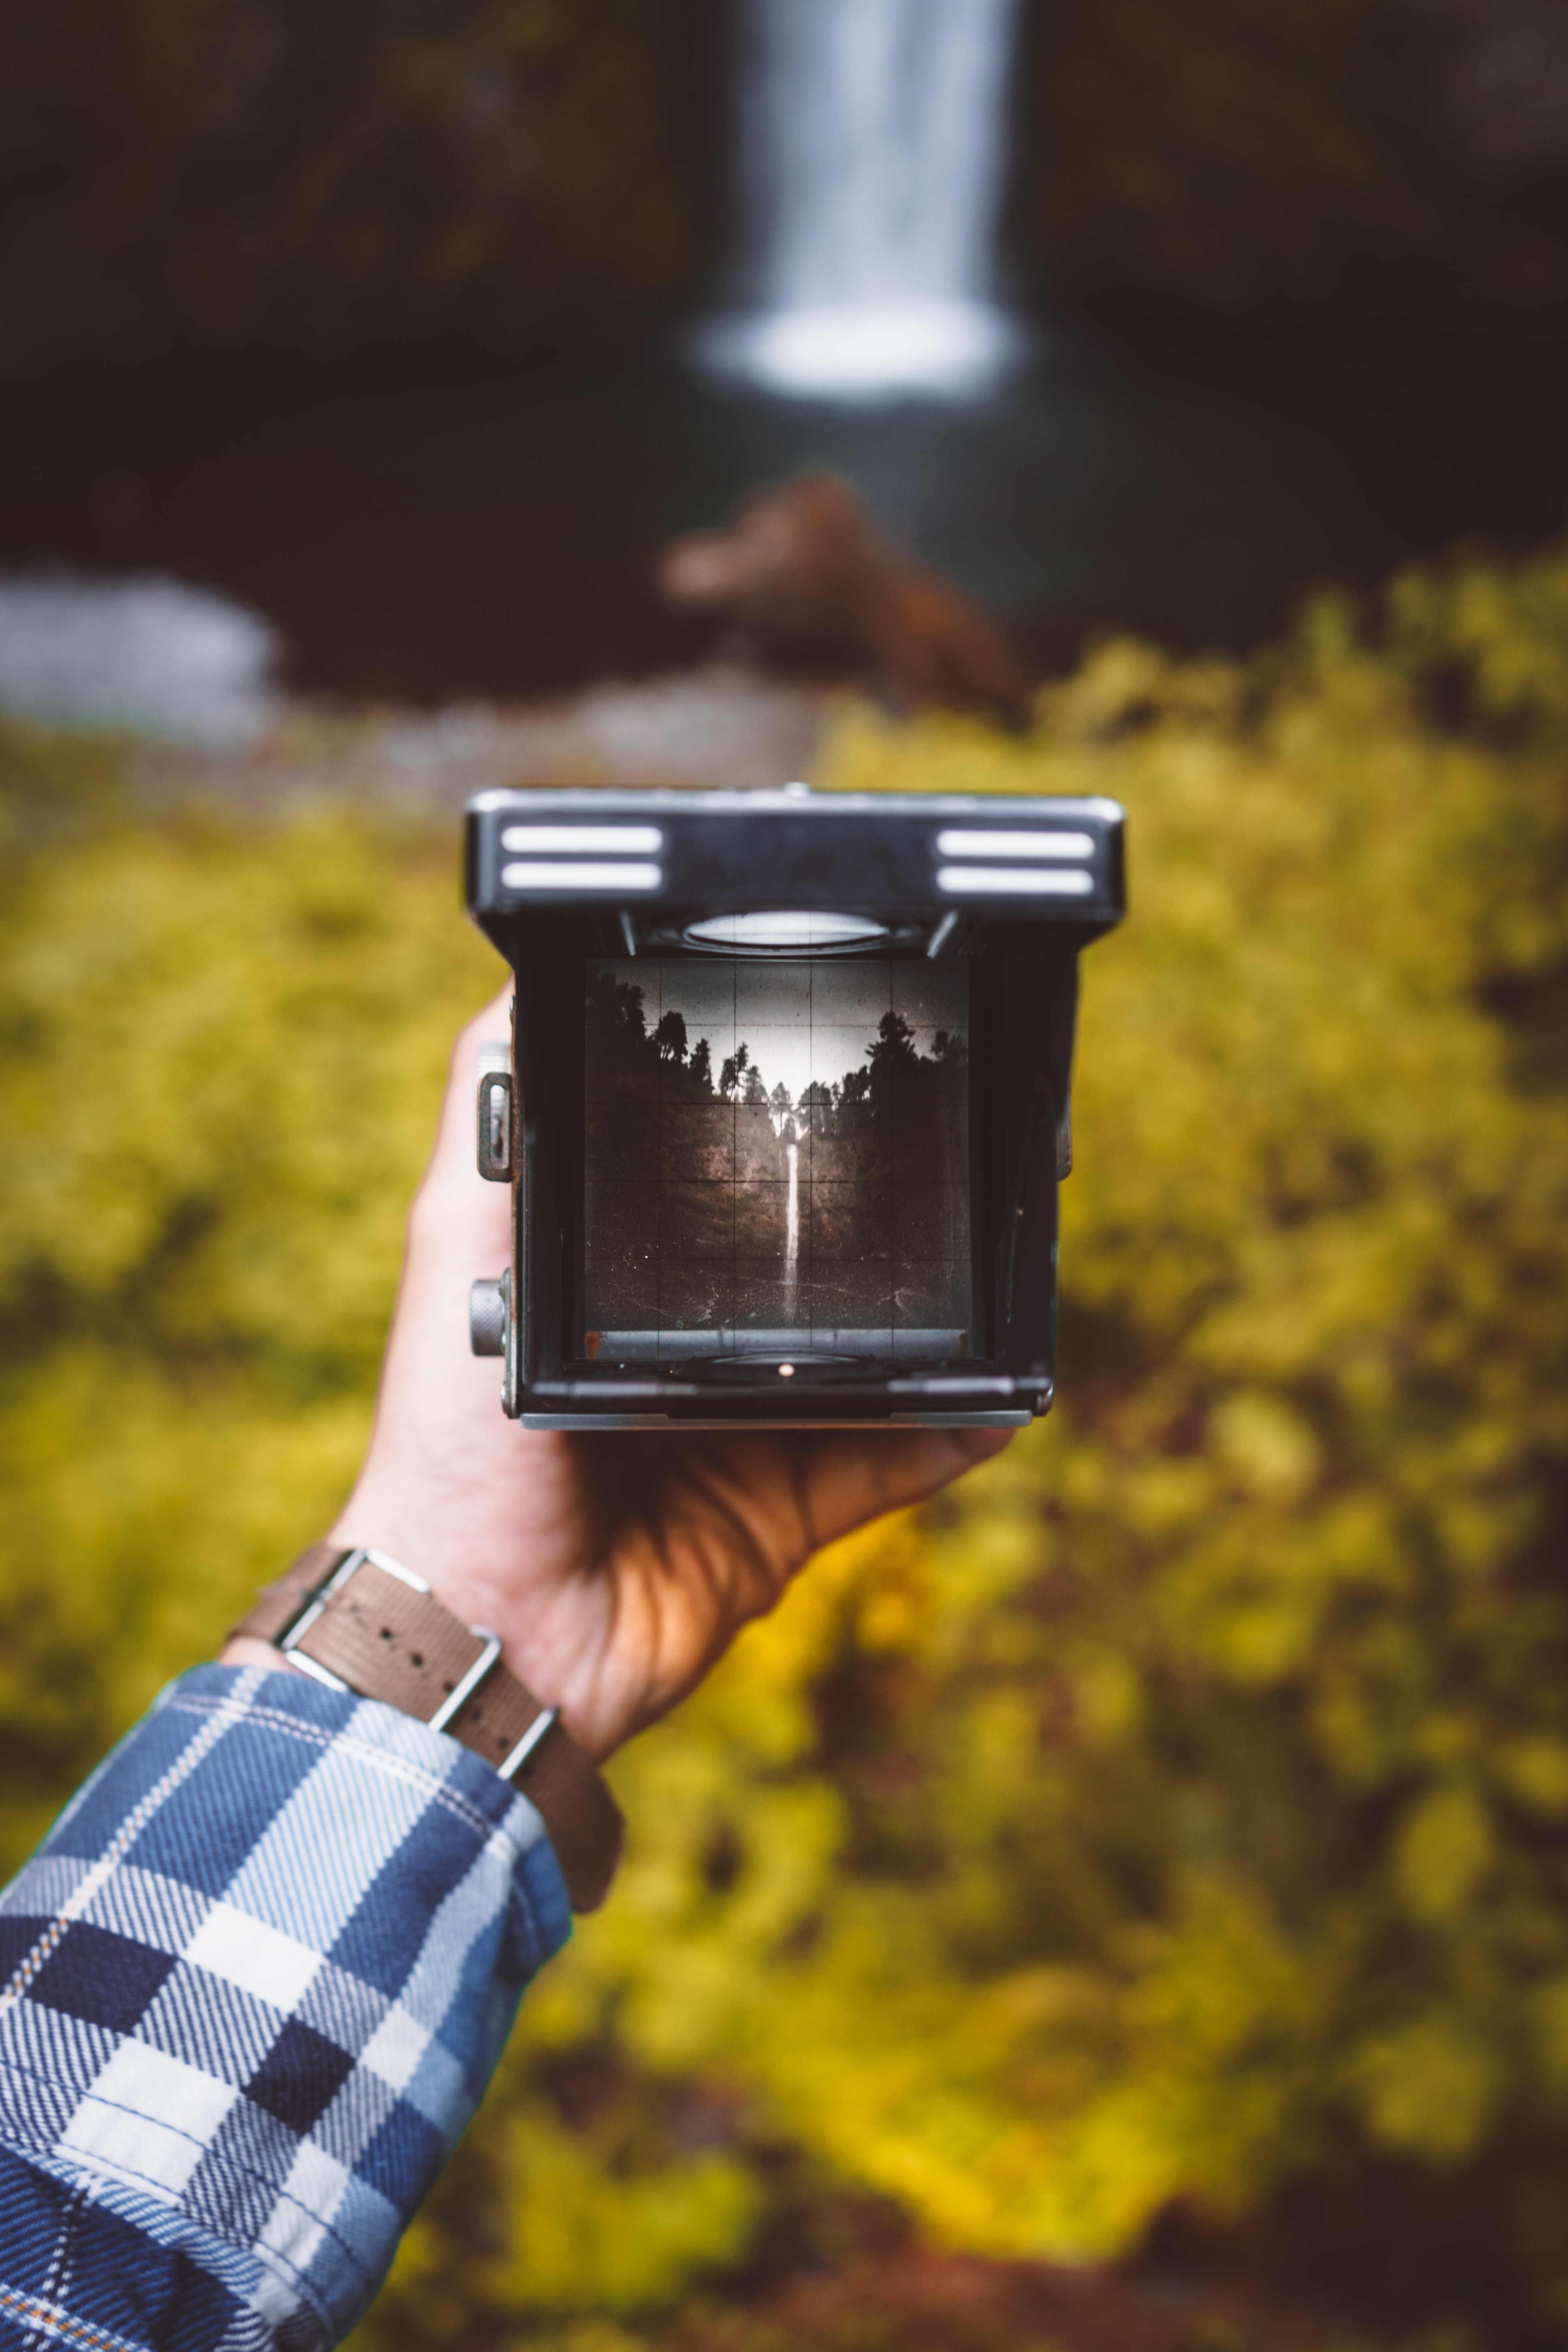 A person holding a viewfinder in their hand near a waterfall